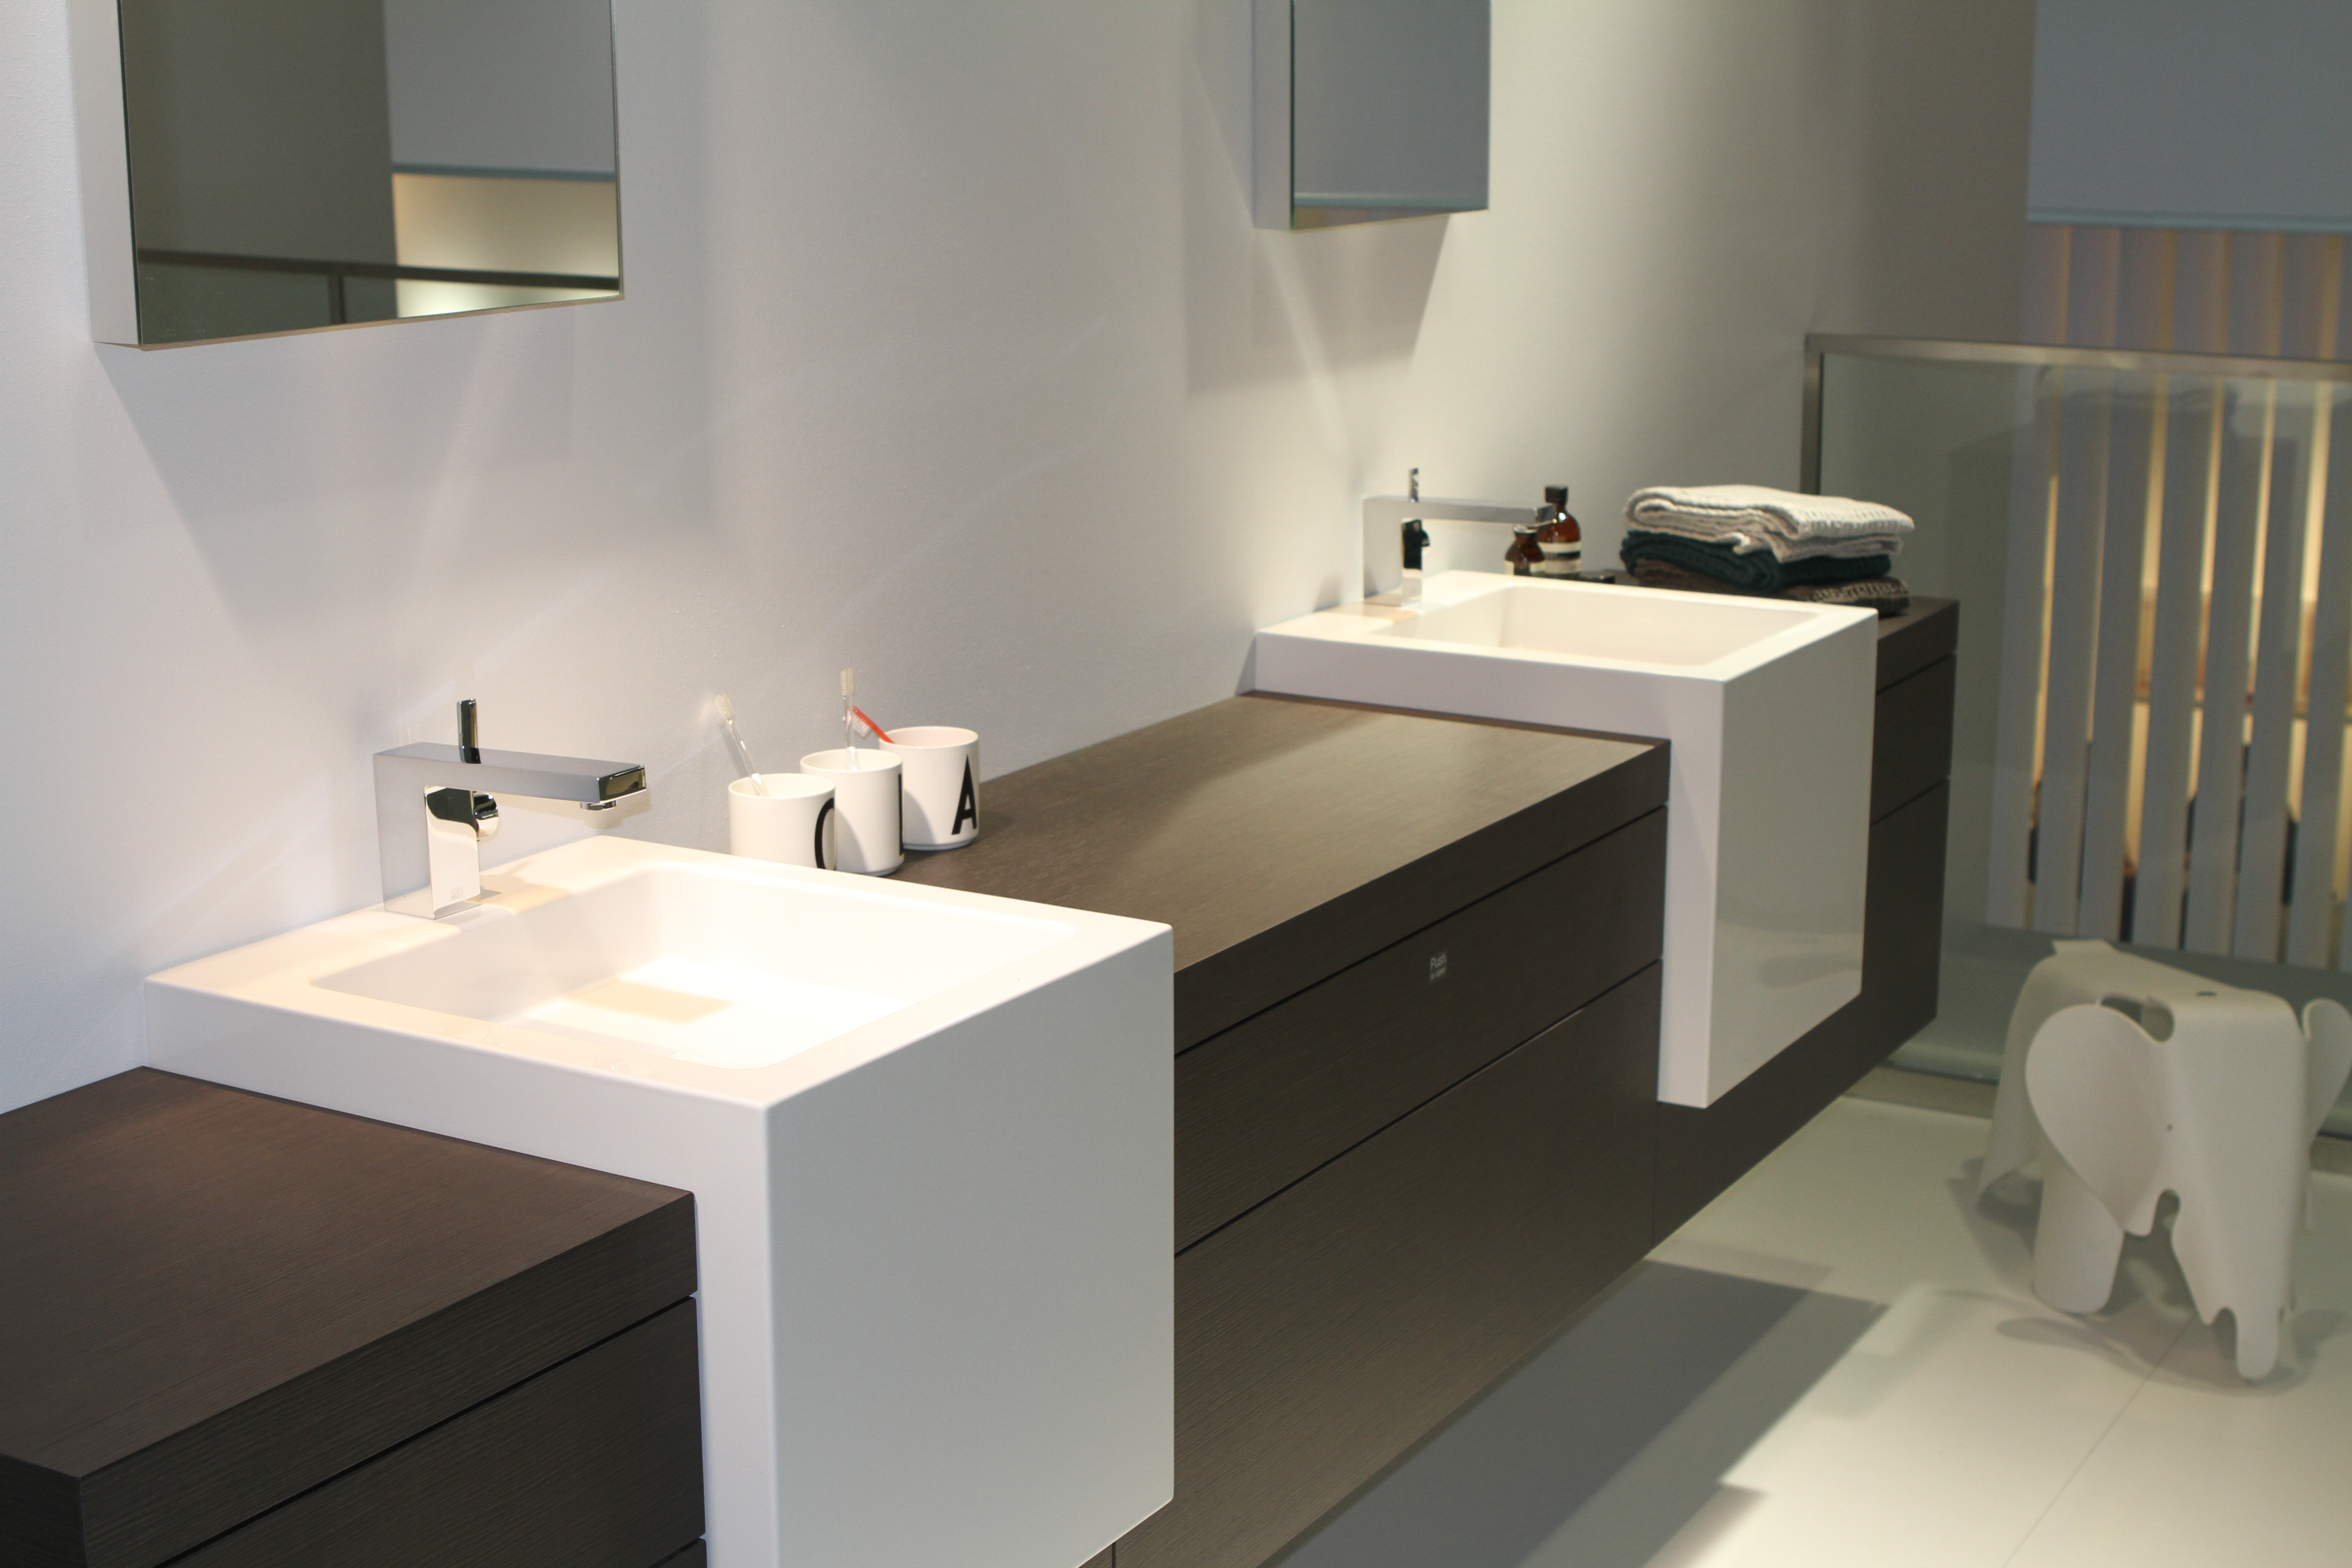 Cibo uber 1200 wall hung vanity from reece - Cabinet From Reece Bathroom Pinterest Cabinets Vanity Units And